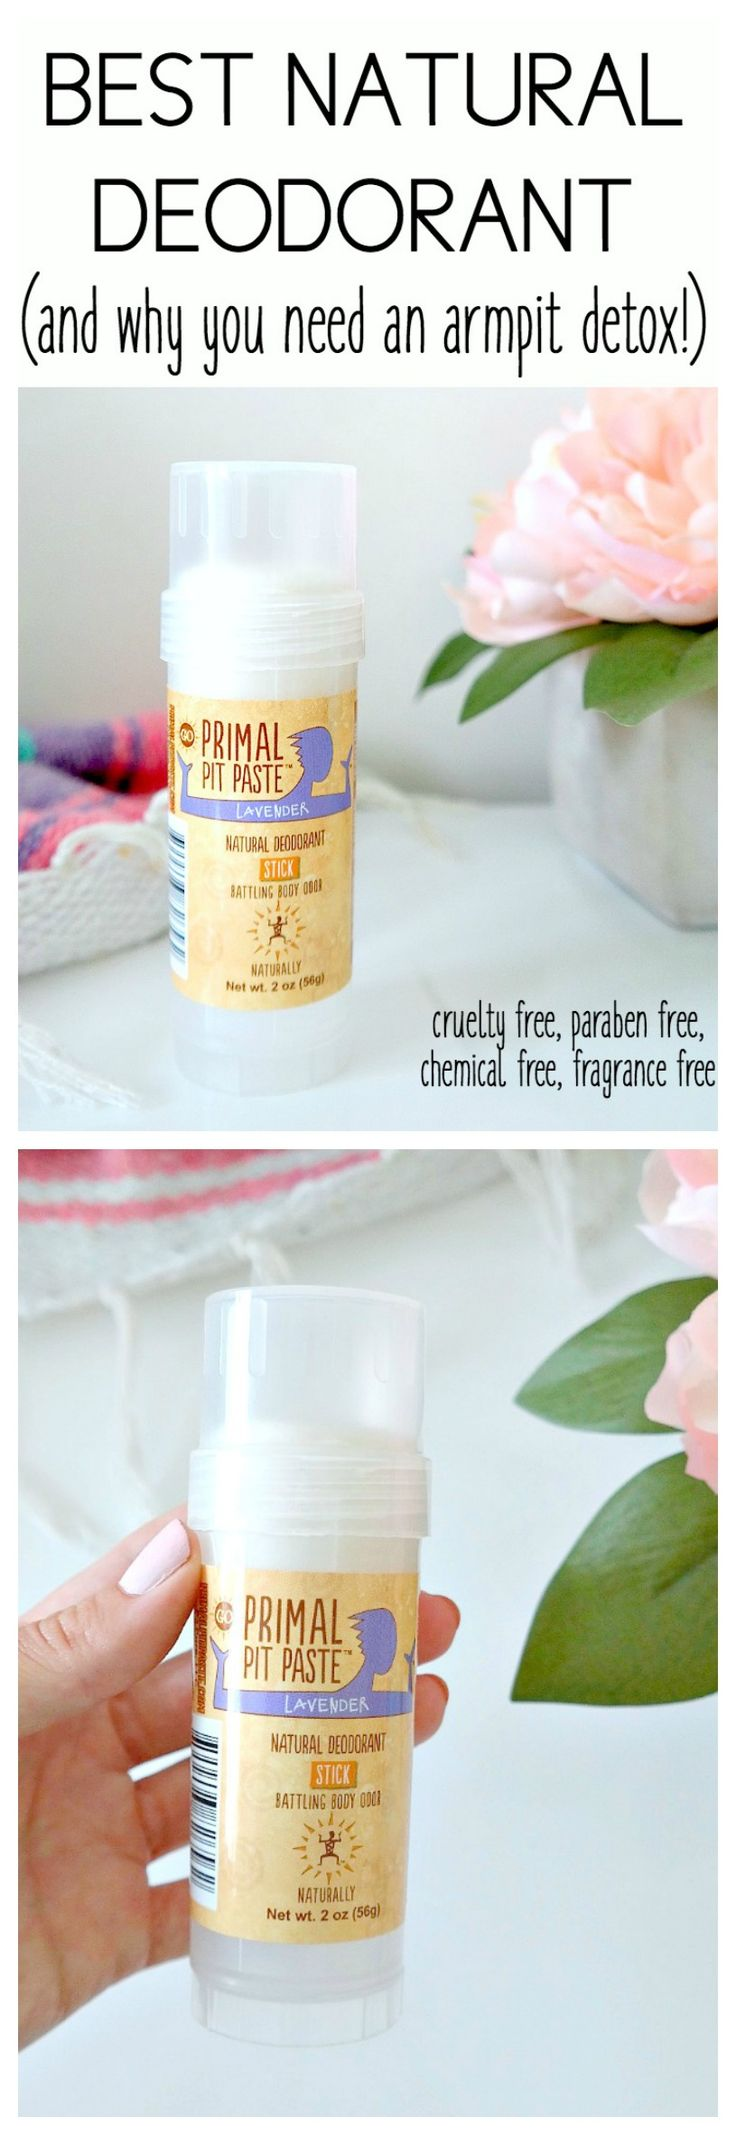 The BEST All-Natural, Cruelty-Free, Aluminum-Free Vegan Deodorant (and why you need an armpit detox!) PLUS, how and why you should switch from conventional to natural! From The Glowing Fridge #vegan #natural #deodorant